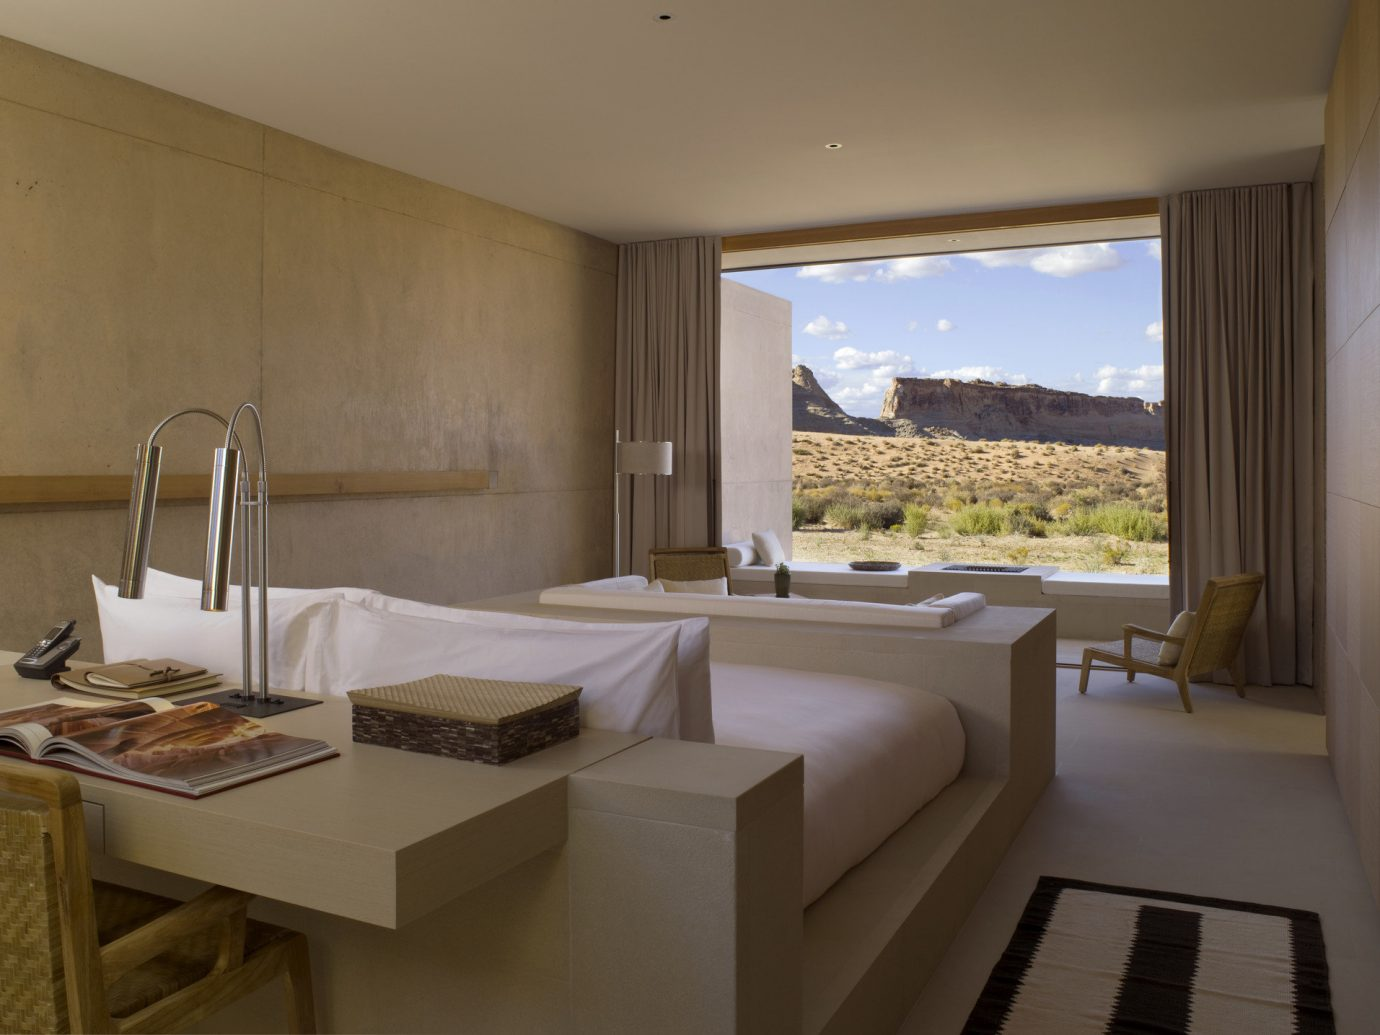 Hotel room with view of desert scape at Amangri